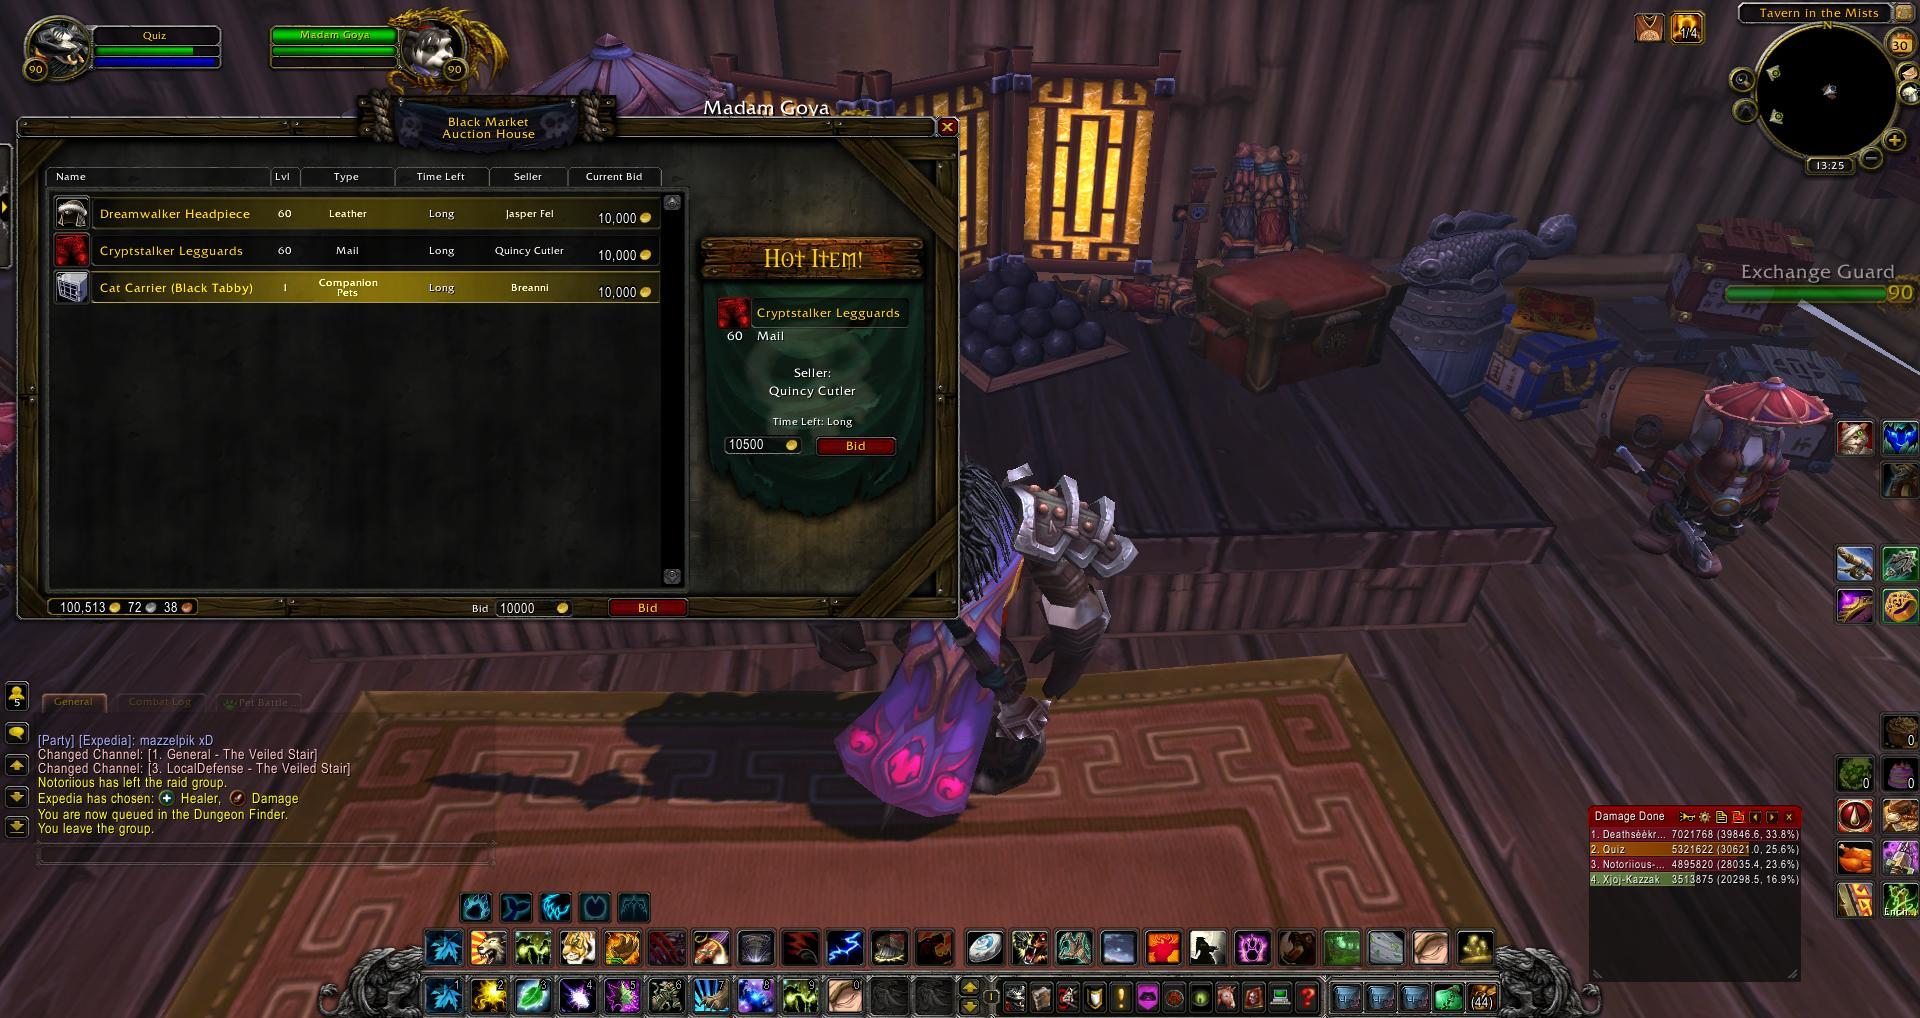 Black Market Auction House wow screenshot